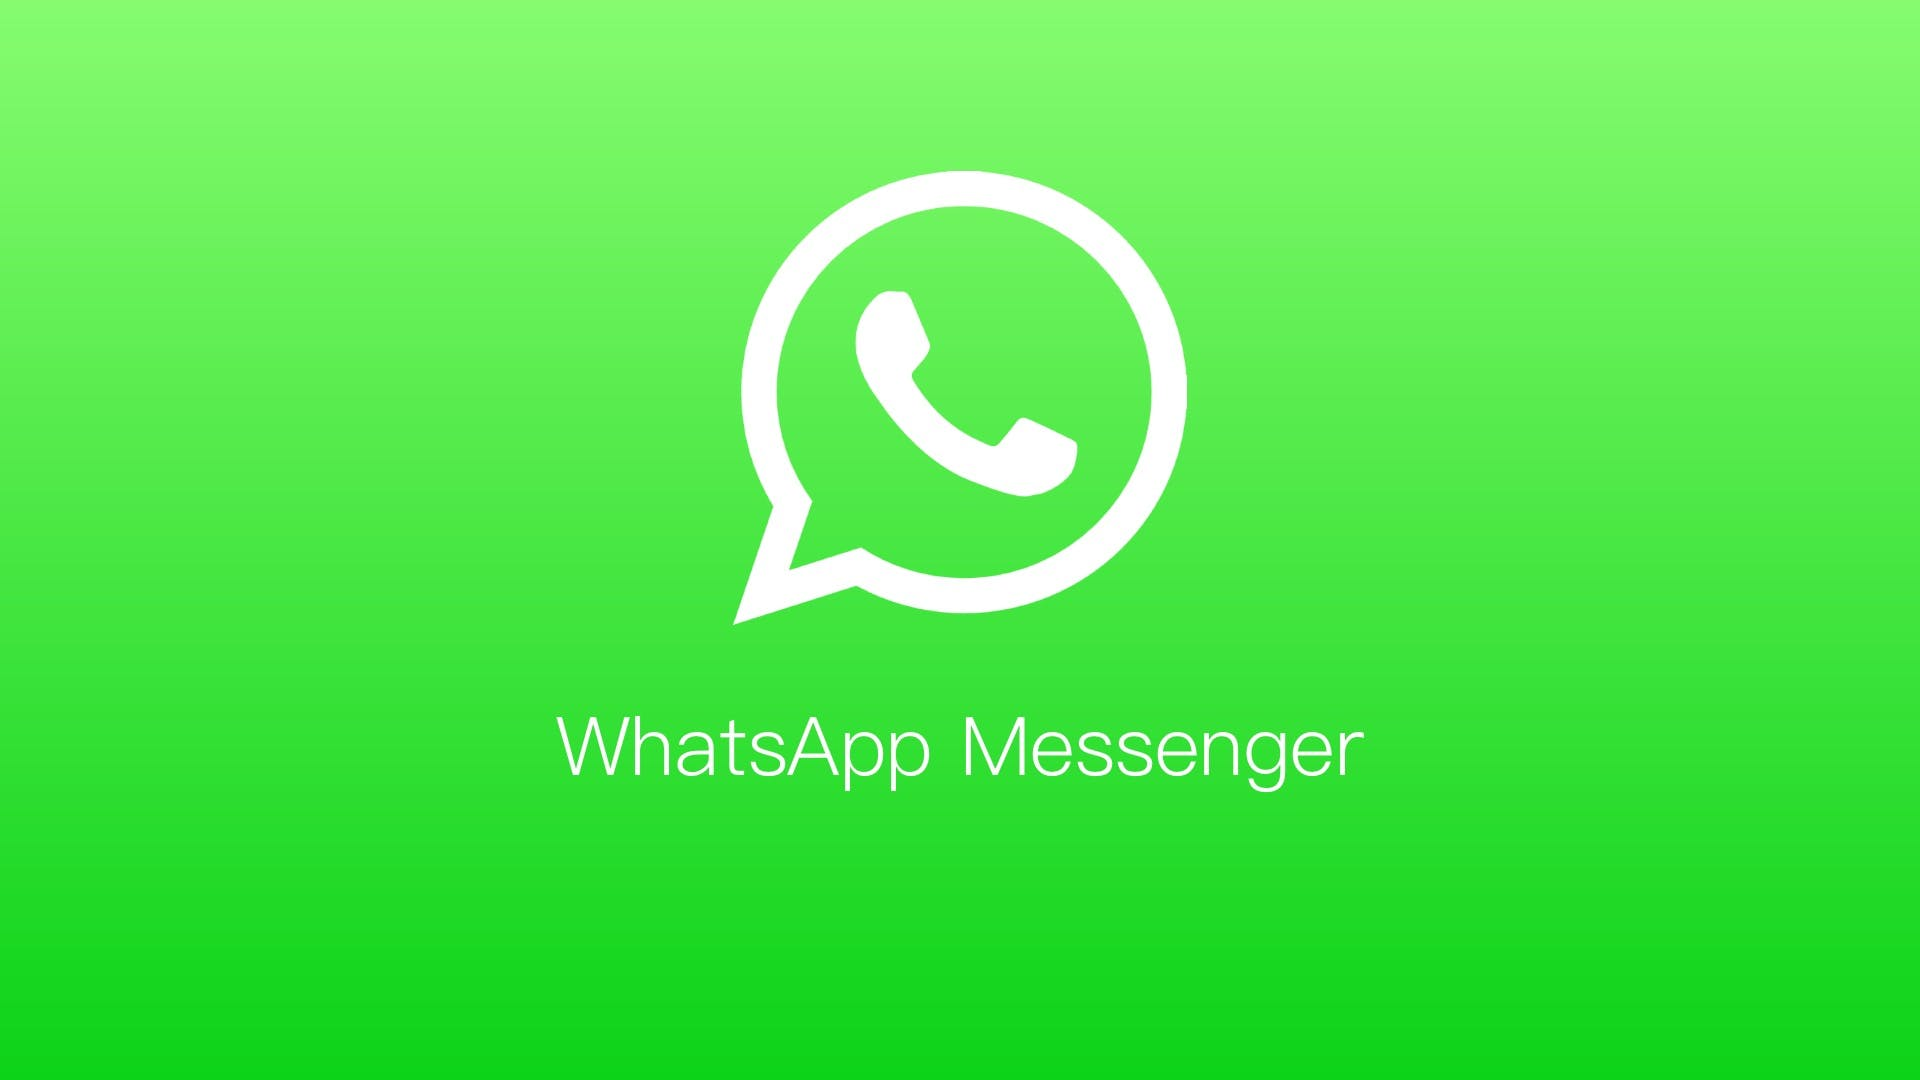 Fotos de stock gratuitas de charla, messenger, Whatsapp